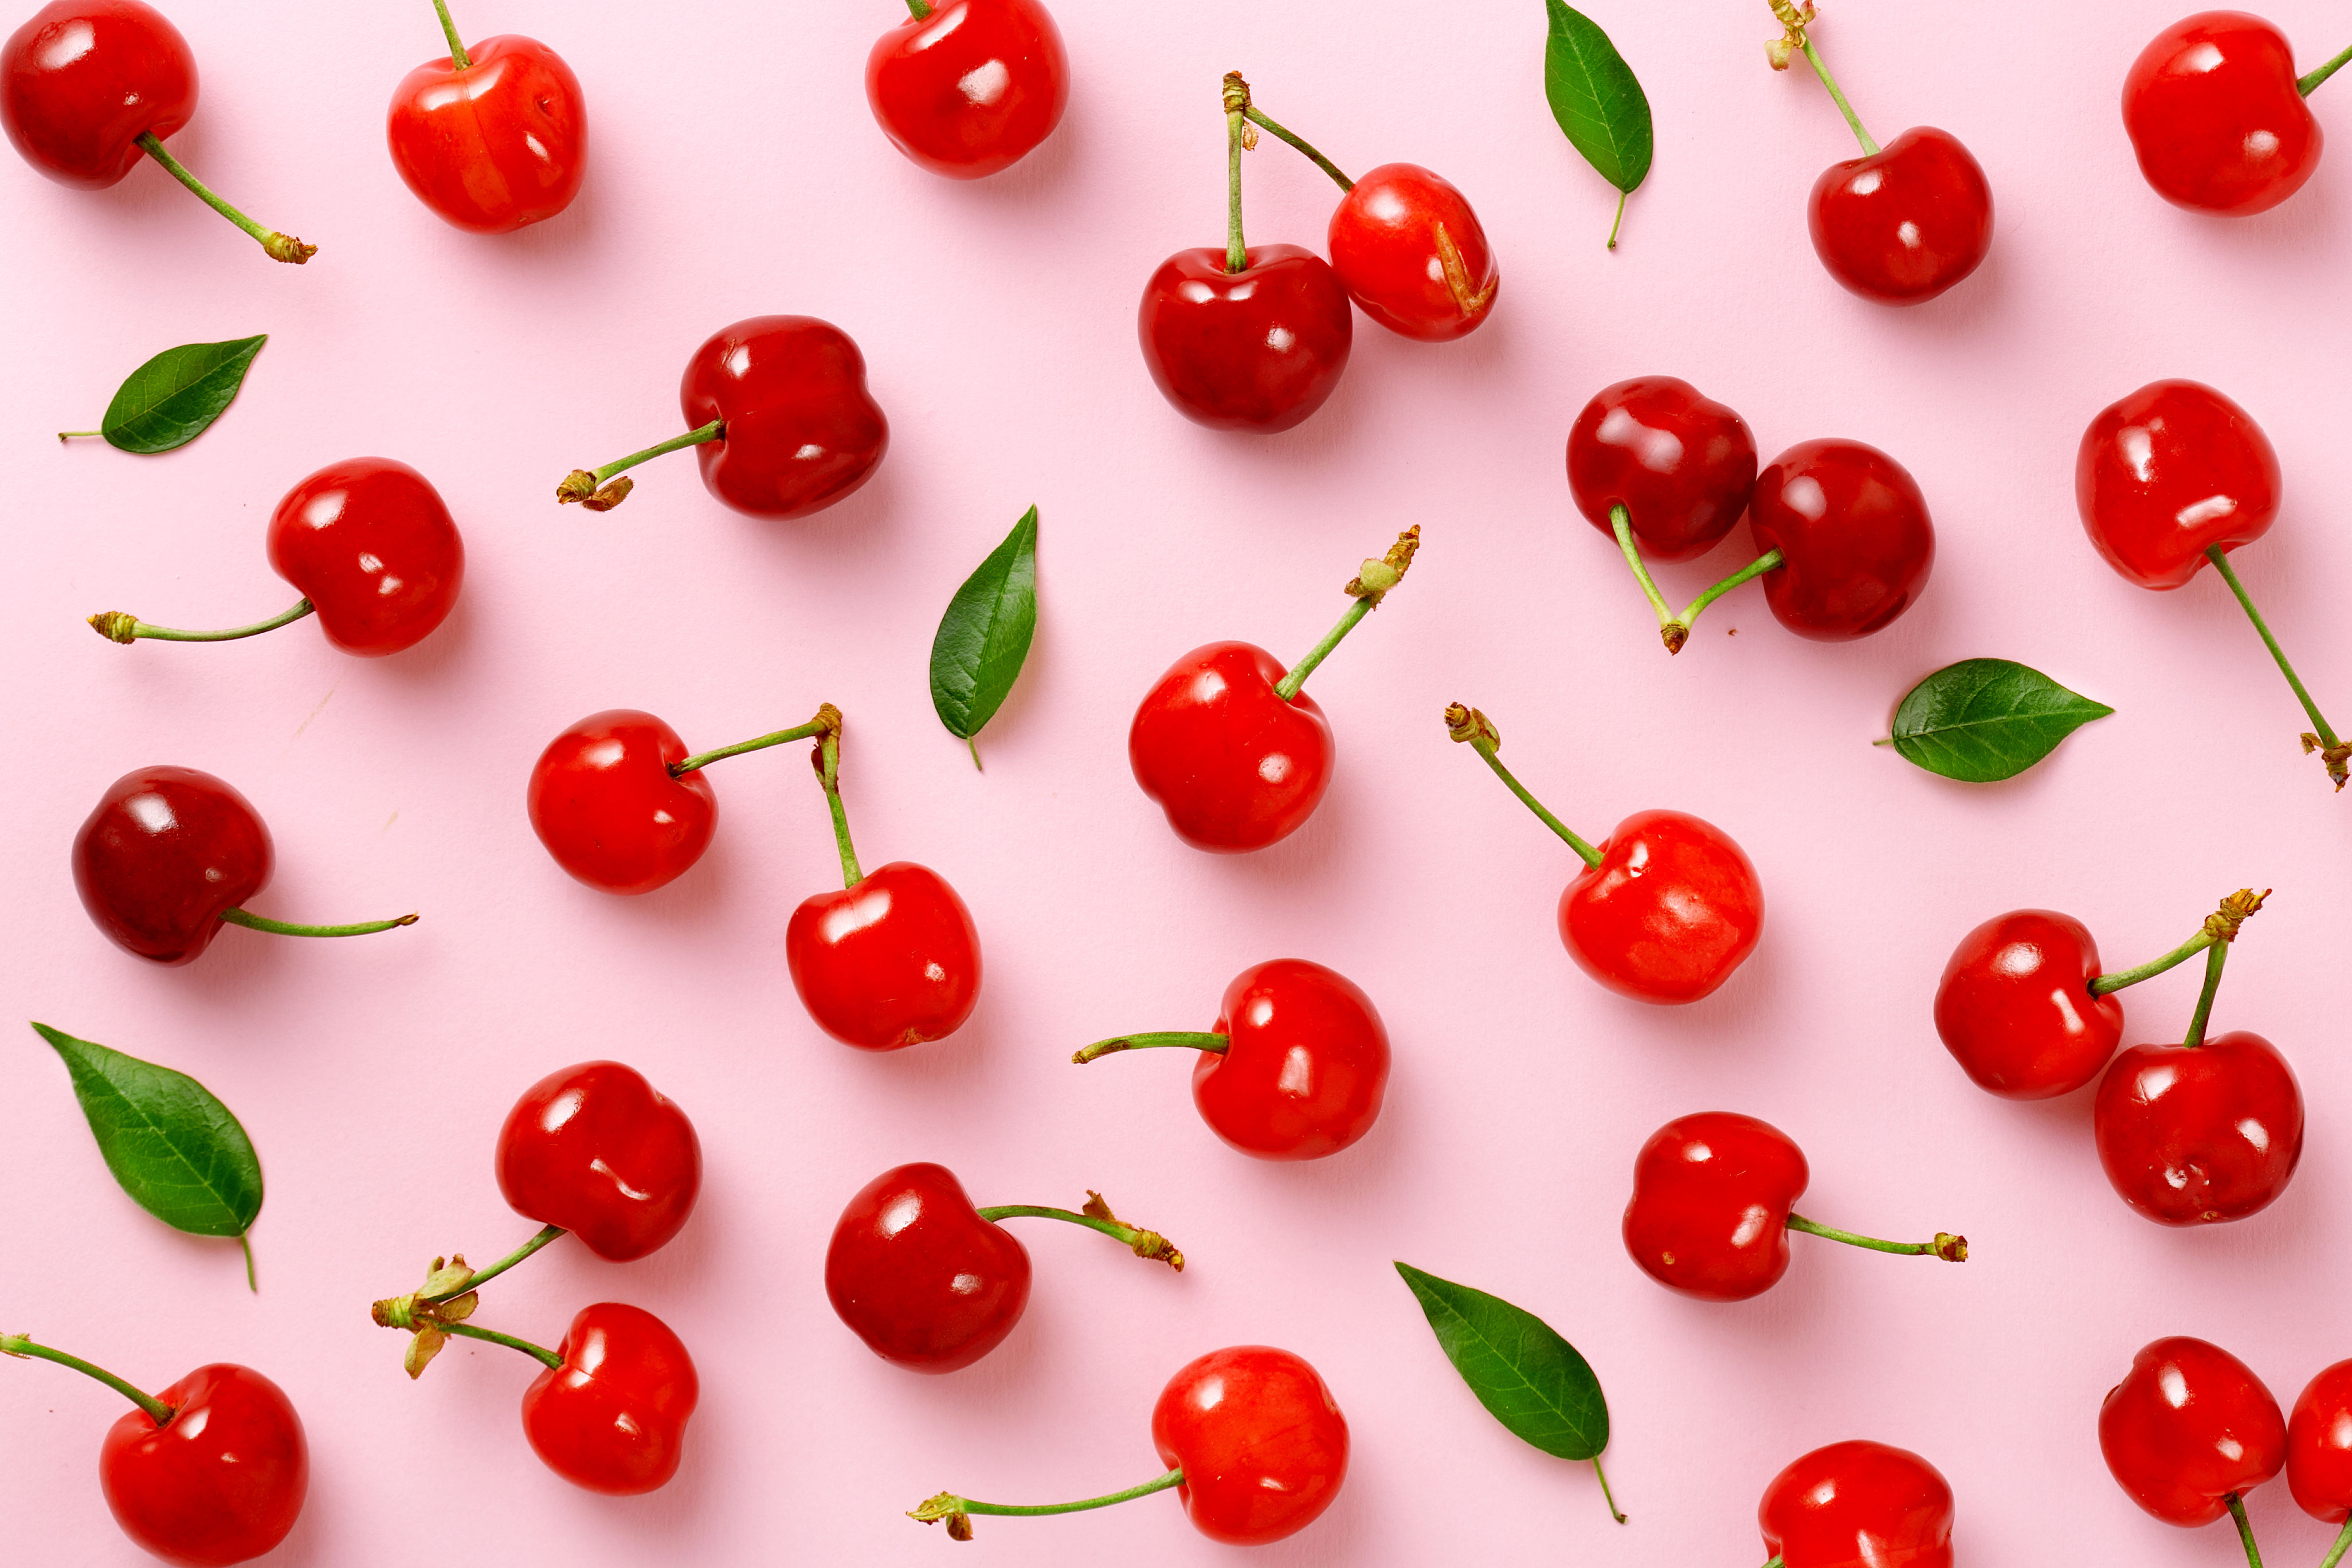 WATCH: This Cherry-Pitting Hack Will Save You Time & Clean Up